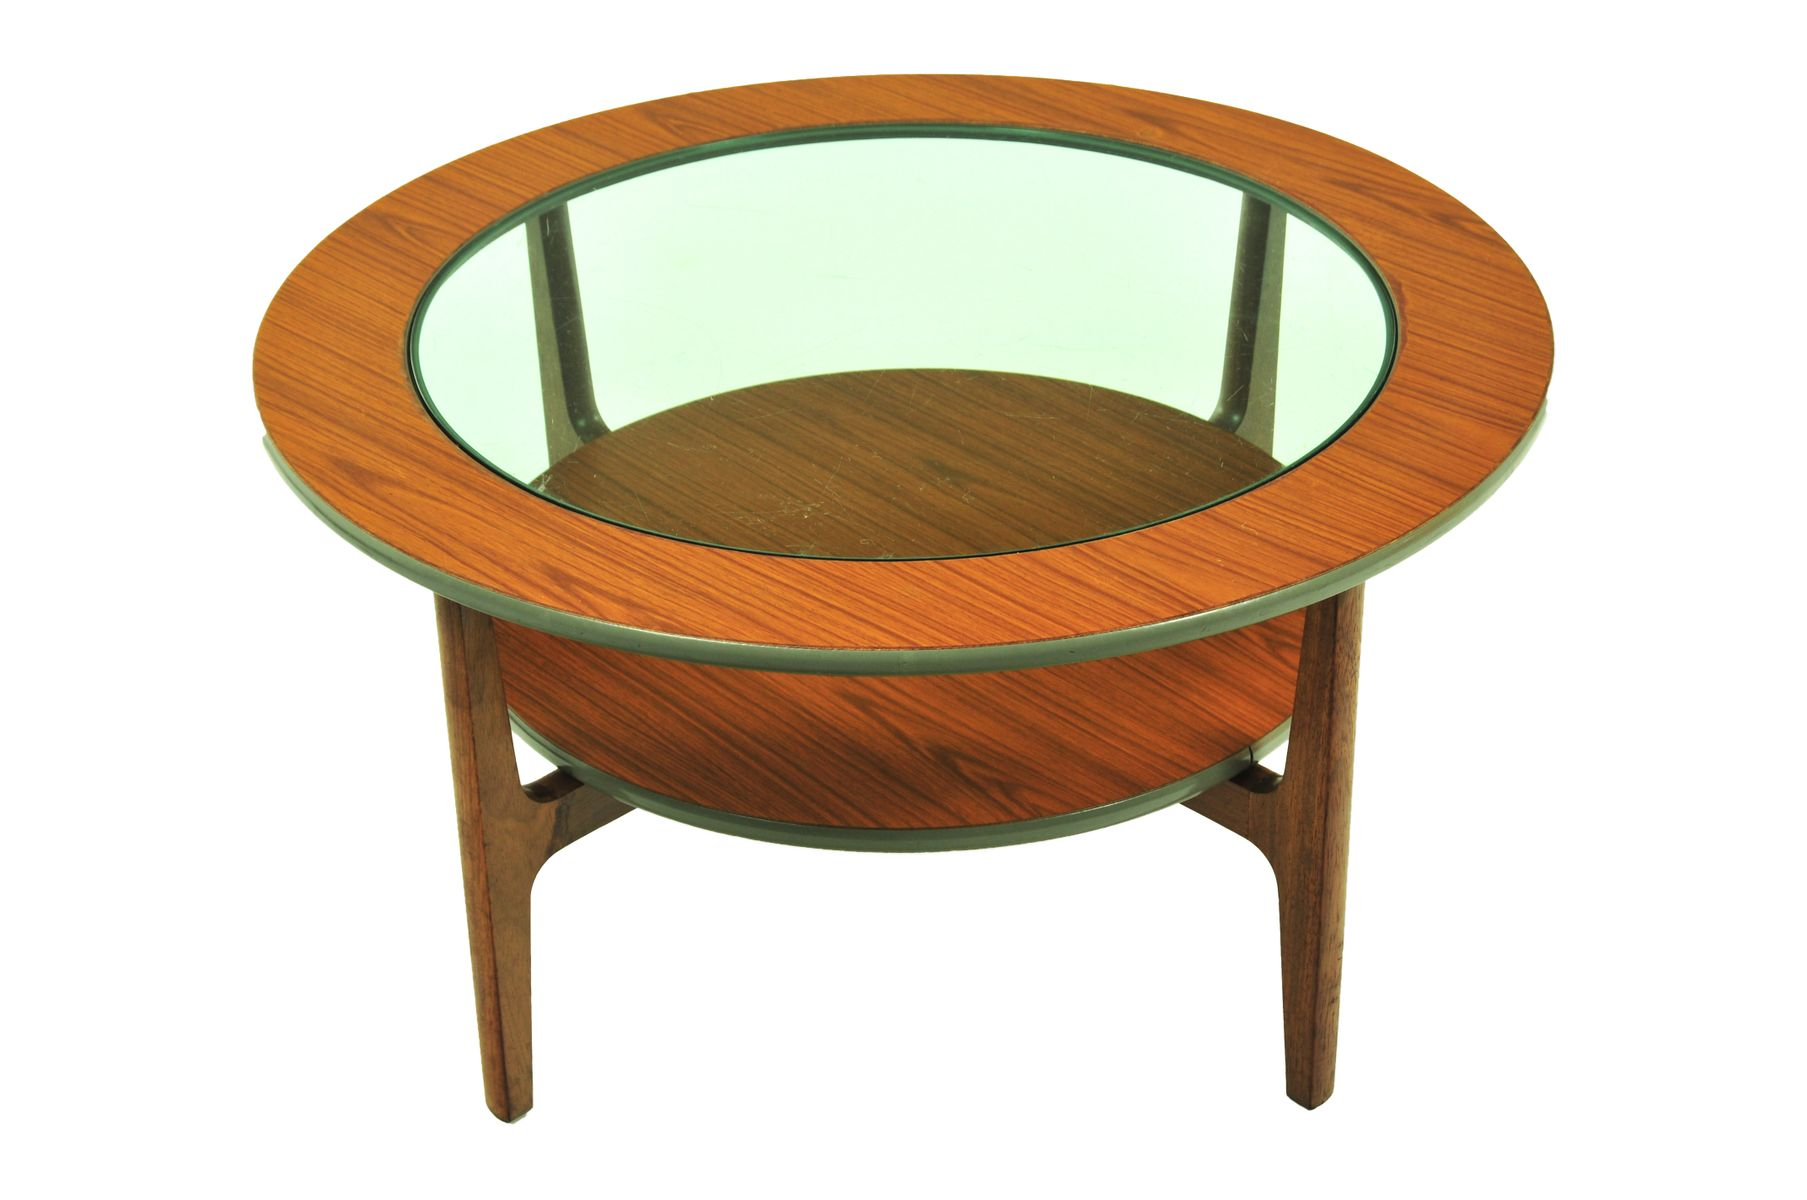 table basse vintage ronde avec plateau en verre 1960s en. Black Bedroom Furniture Sets. Home Design Ideas